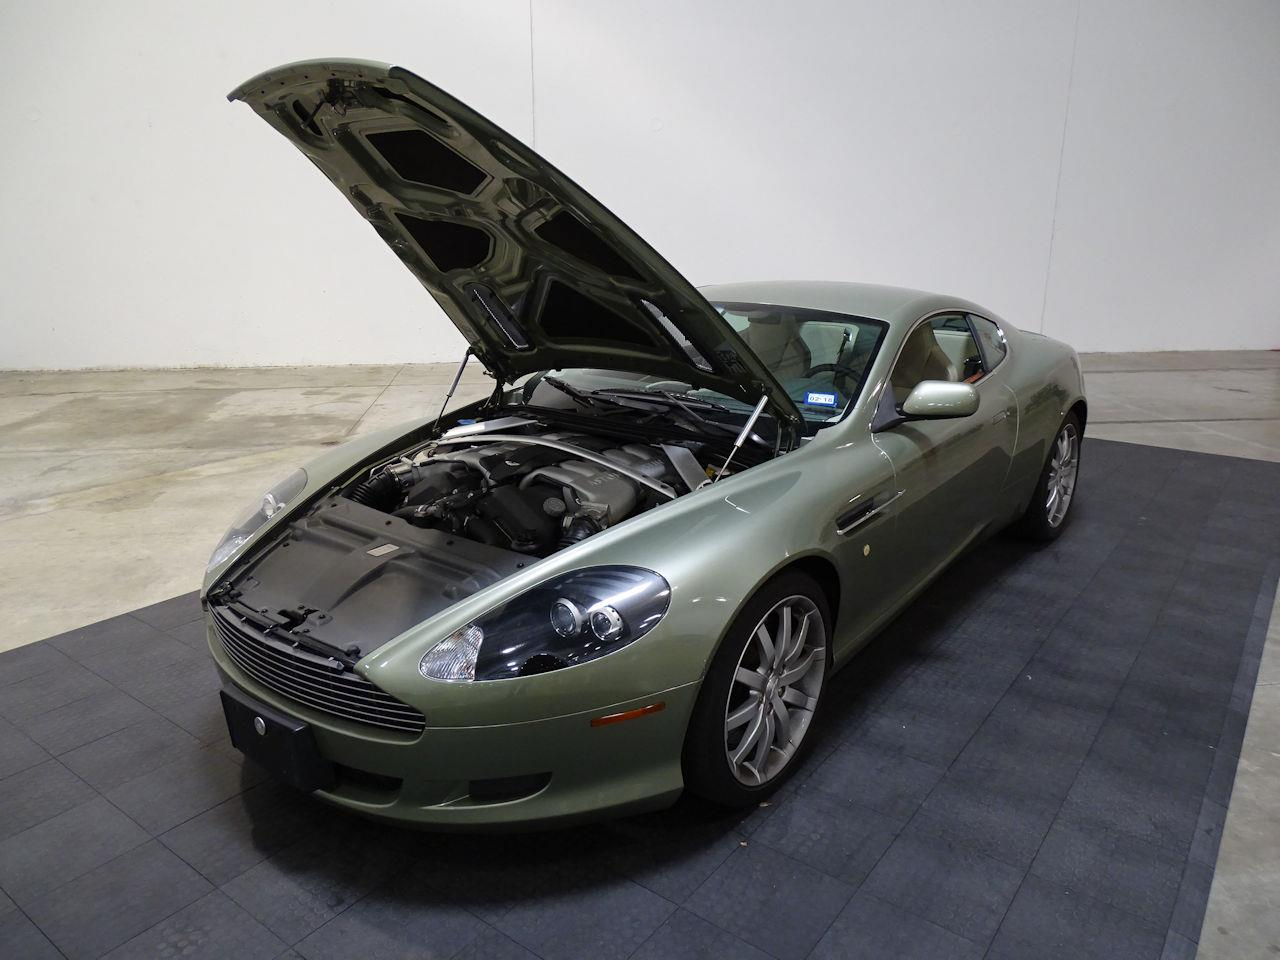 Large Picture of '05 Aston Martin DB9 located in Texas - $58,000.00 - L7ZM